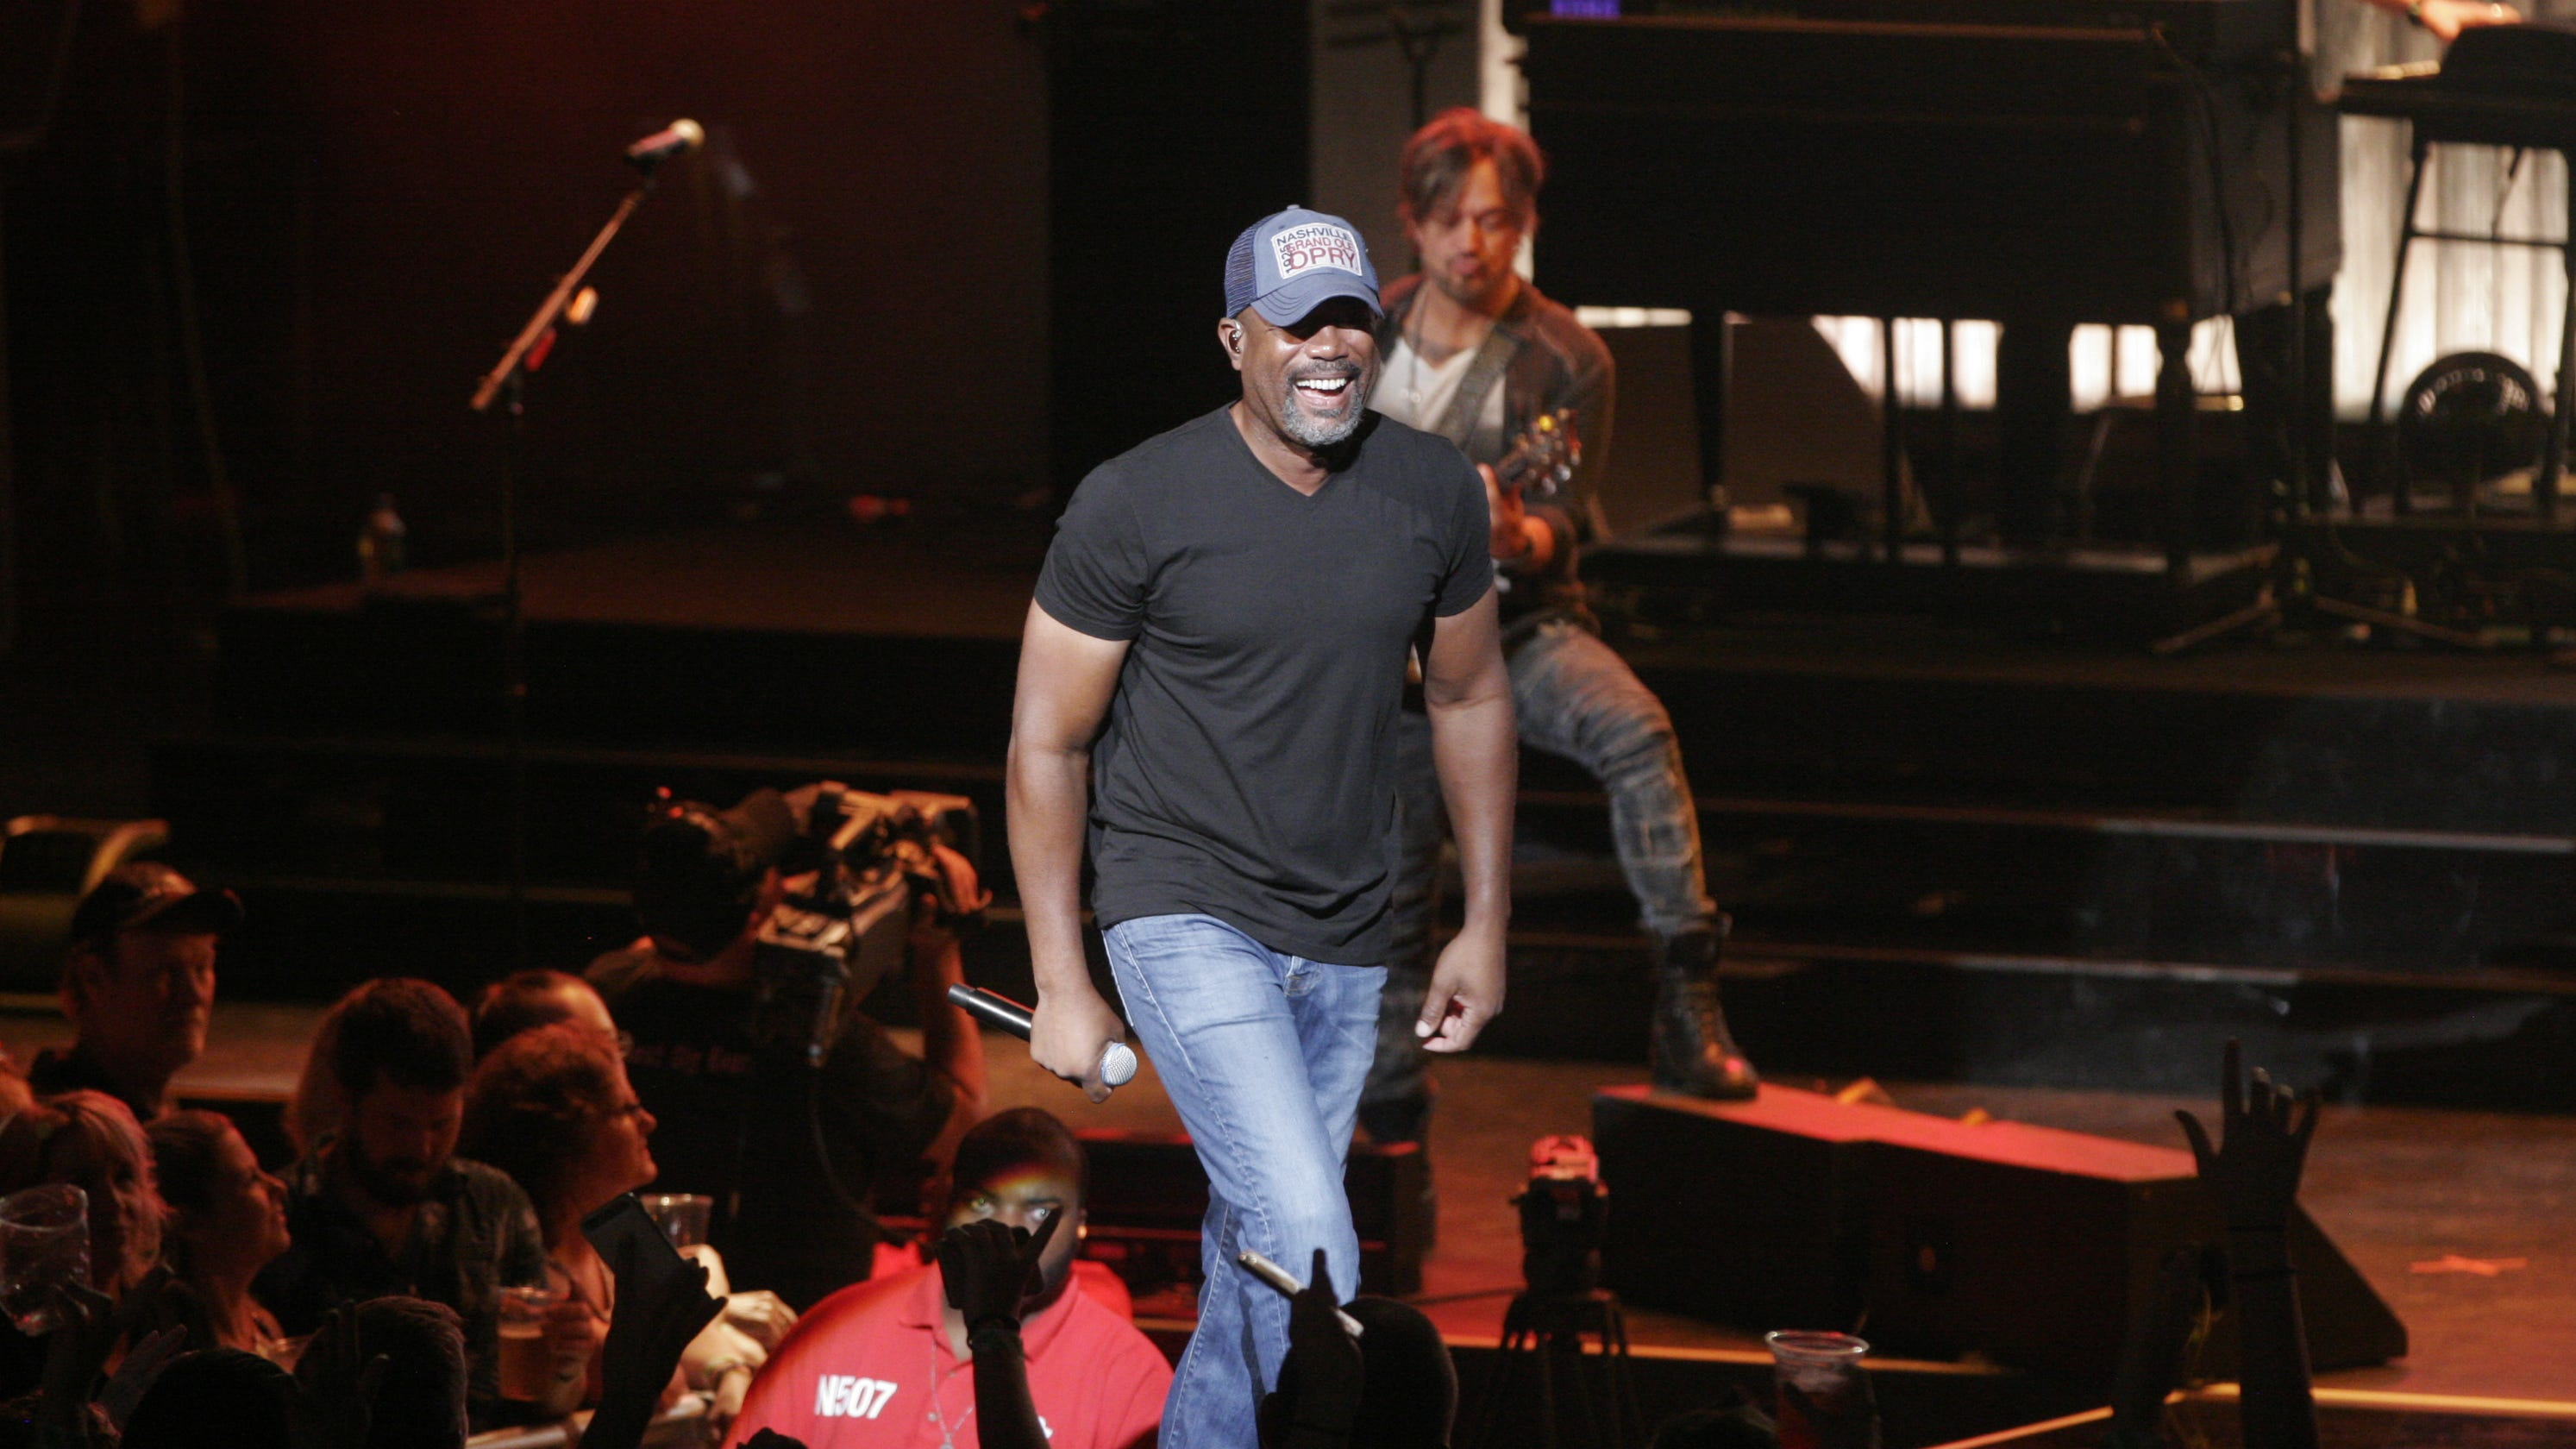 Lady Antebellum Darius Rucker A Breezy Ride At Milwaukee Harley Bash